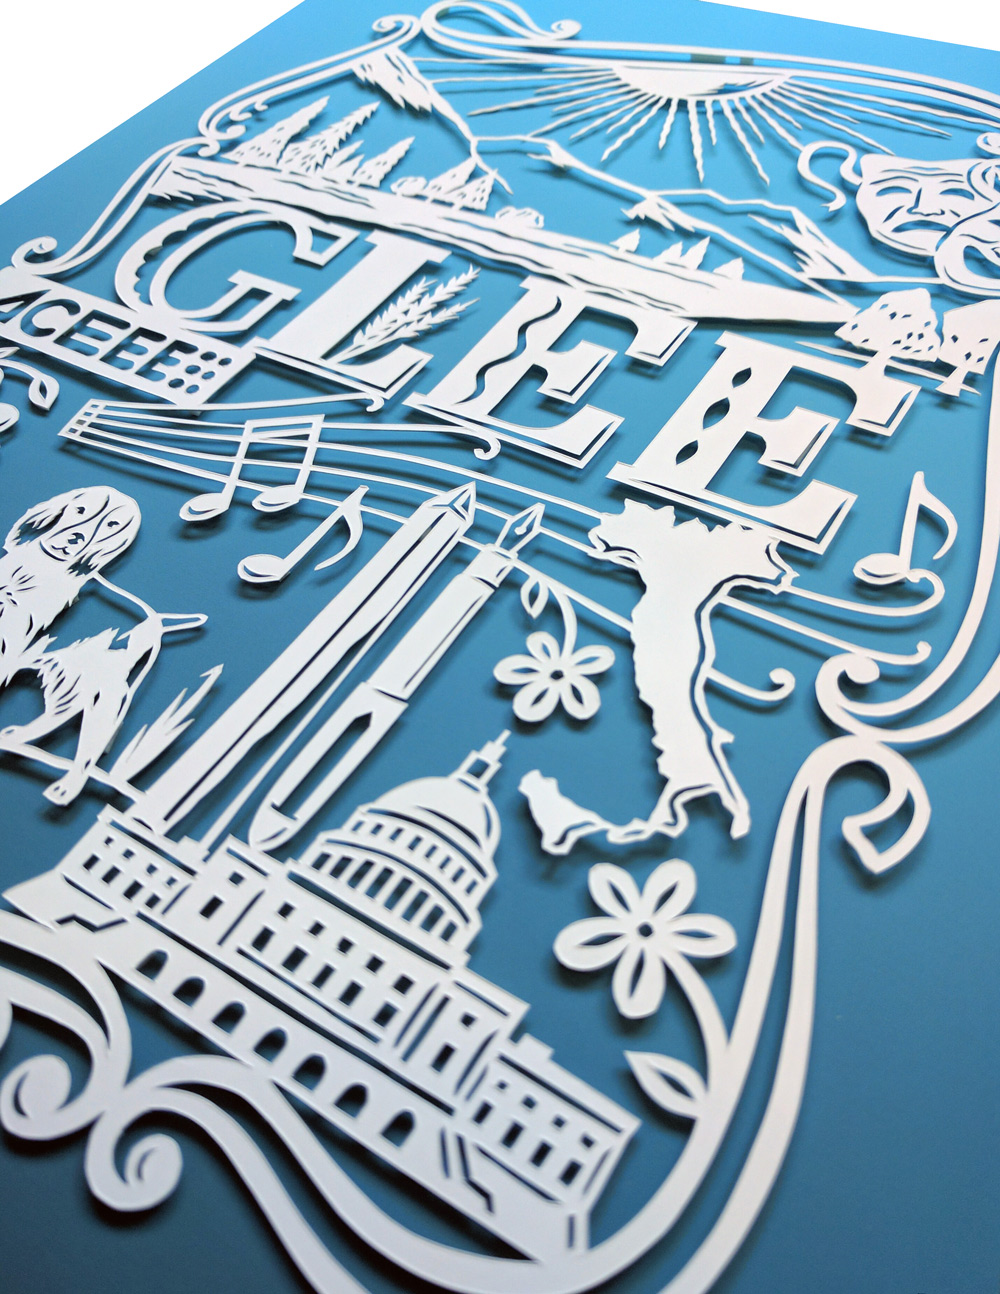 papercut-illustration-weshington-dc-julene-harrison-2